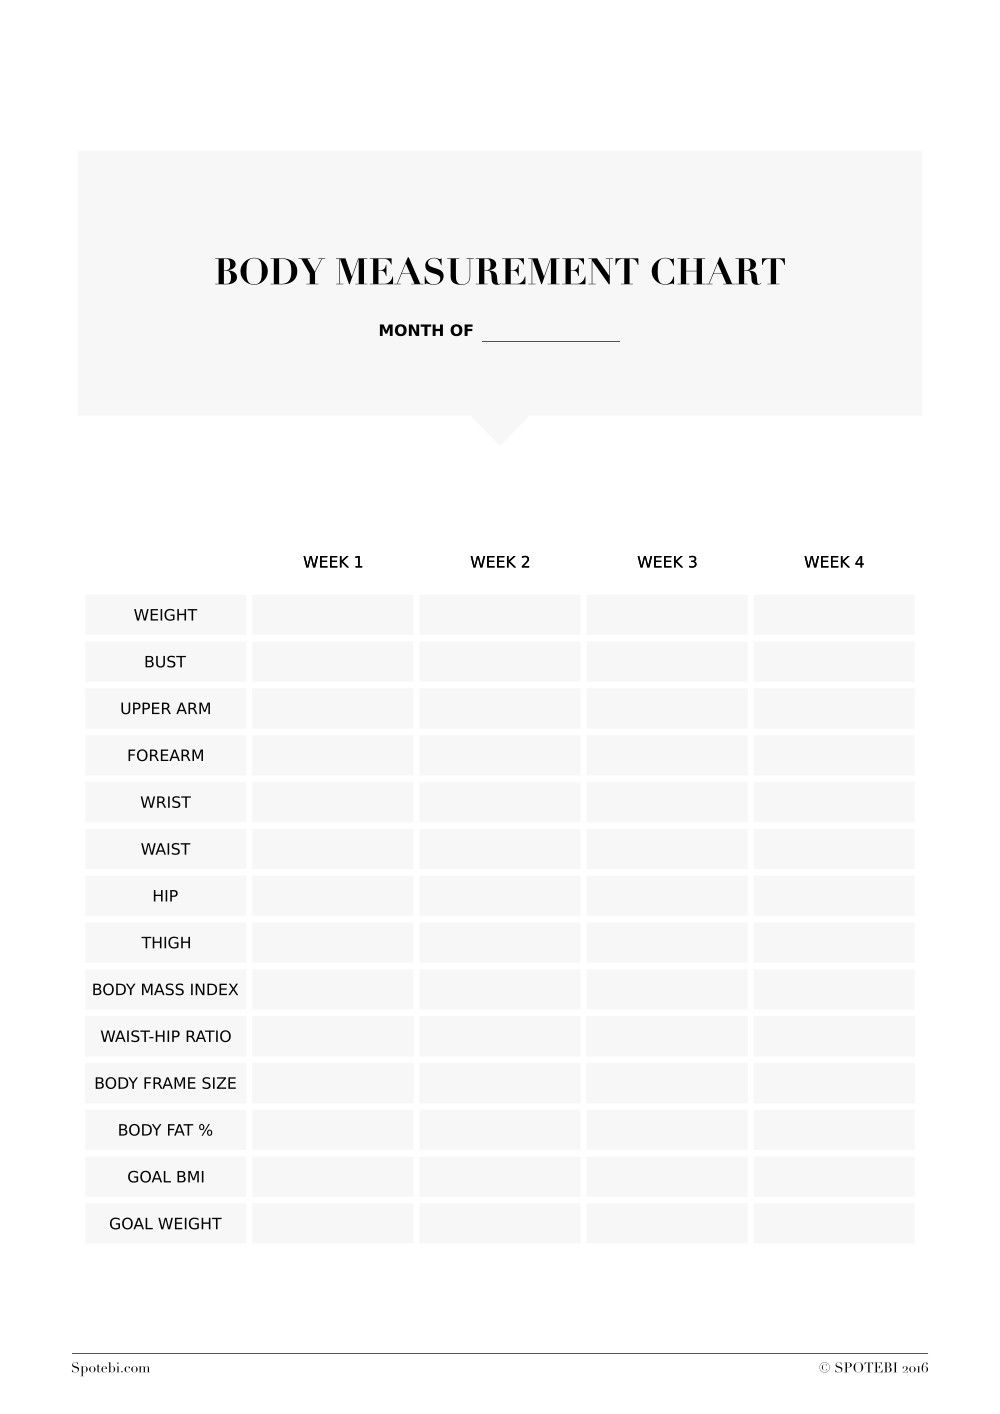 Ideal Body Weight Printable | Free fitness, Workout and Workout planner